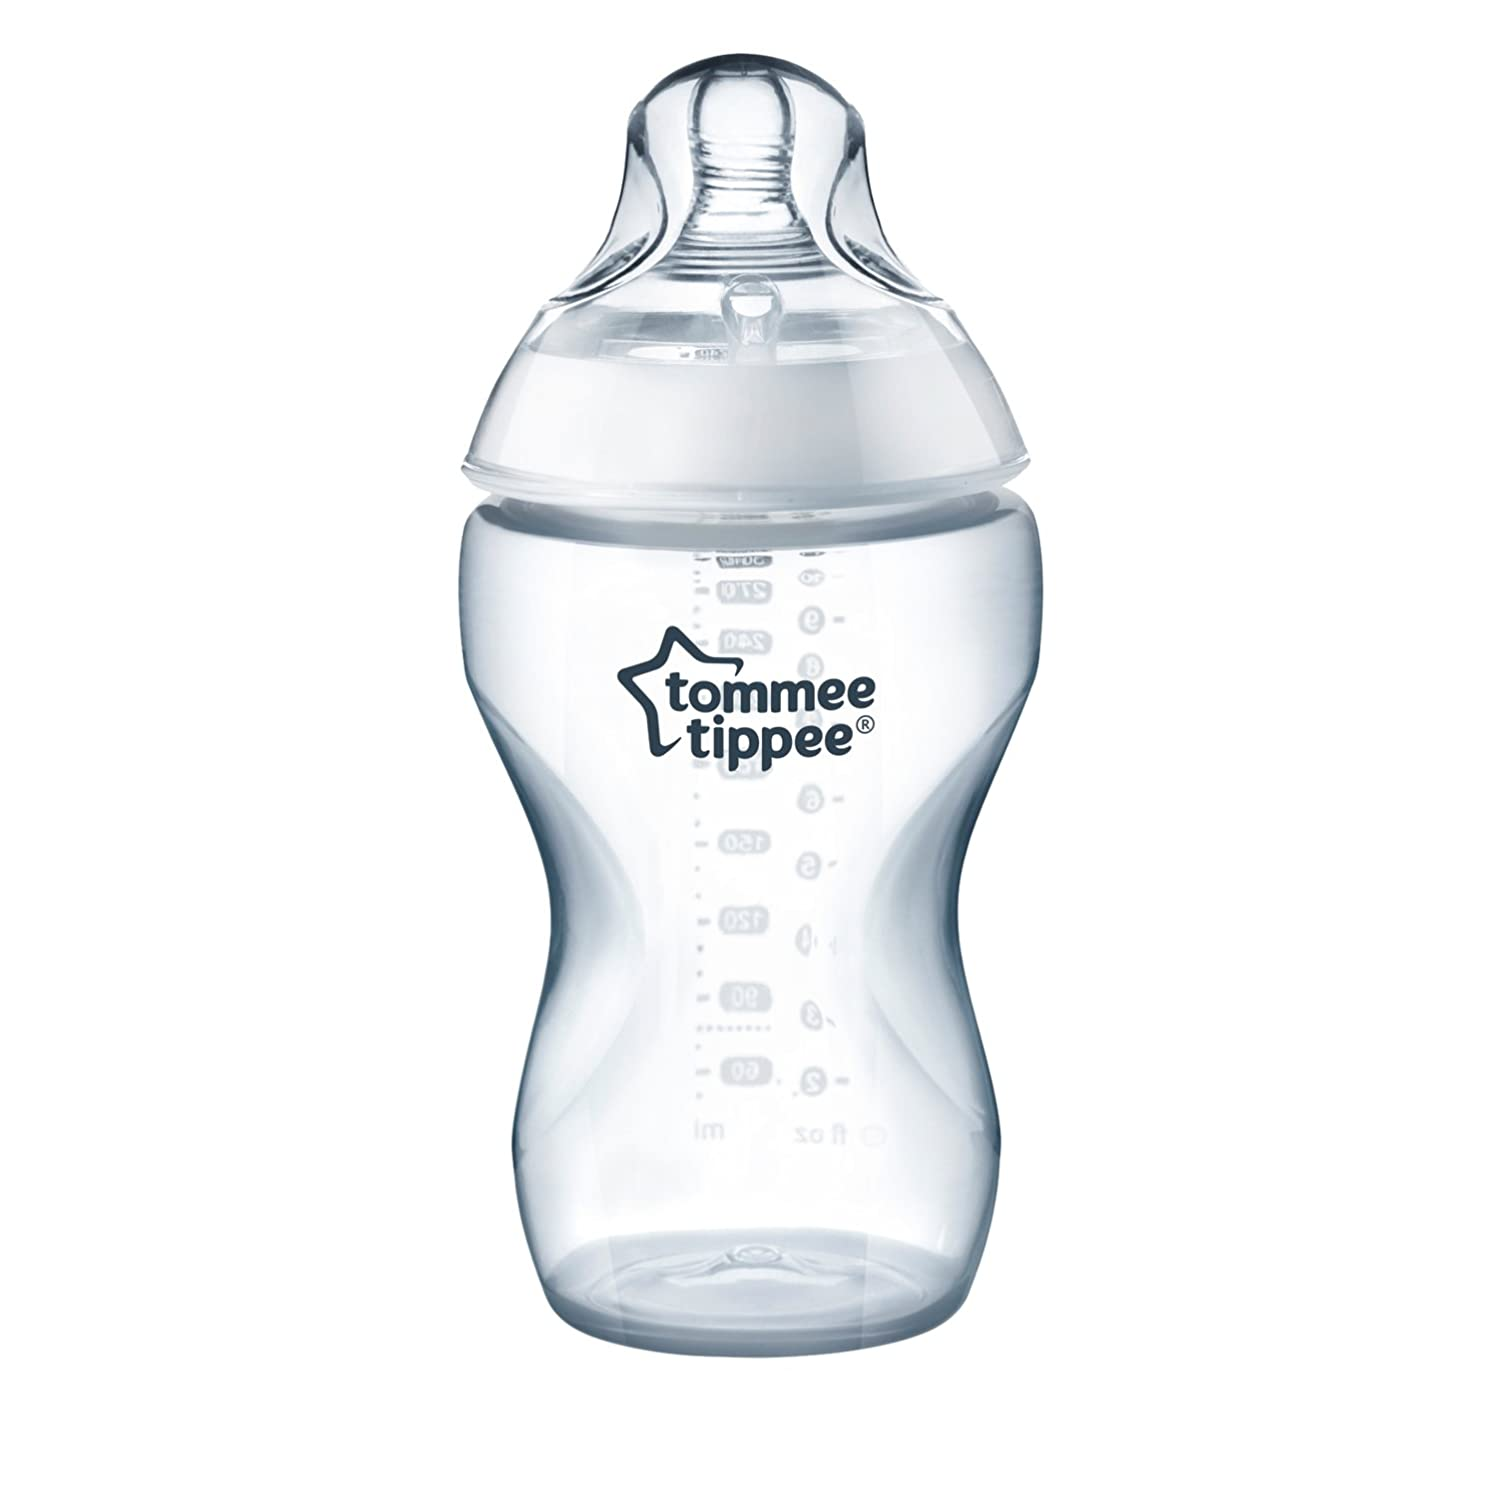 Tommee Tippee Closer to Nature Added Cereal Baby Bottle, 11 Ounce, 3 Count 522543